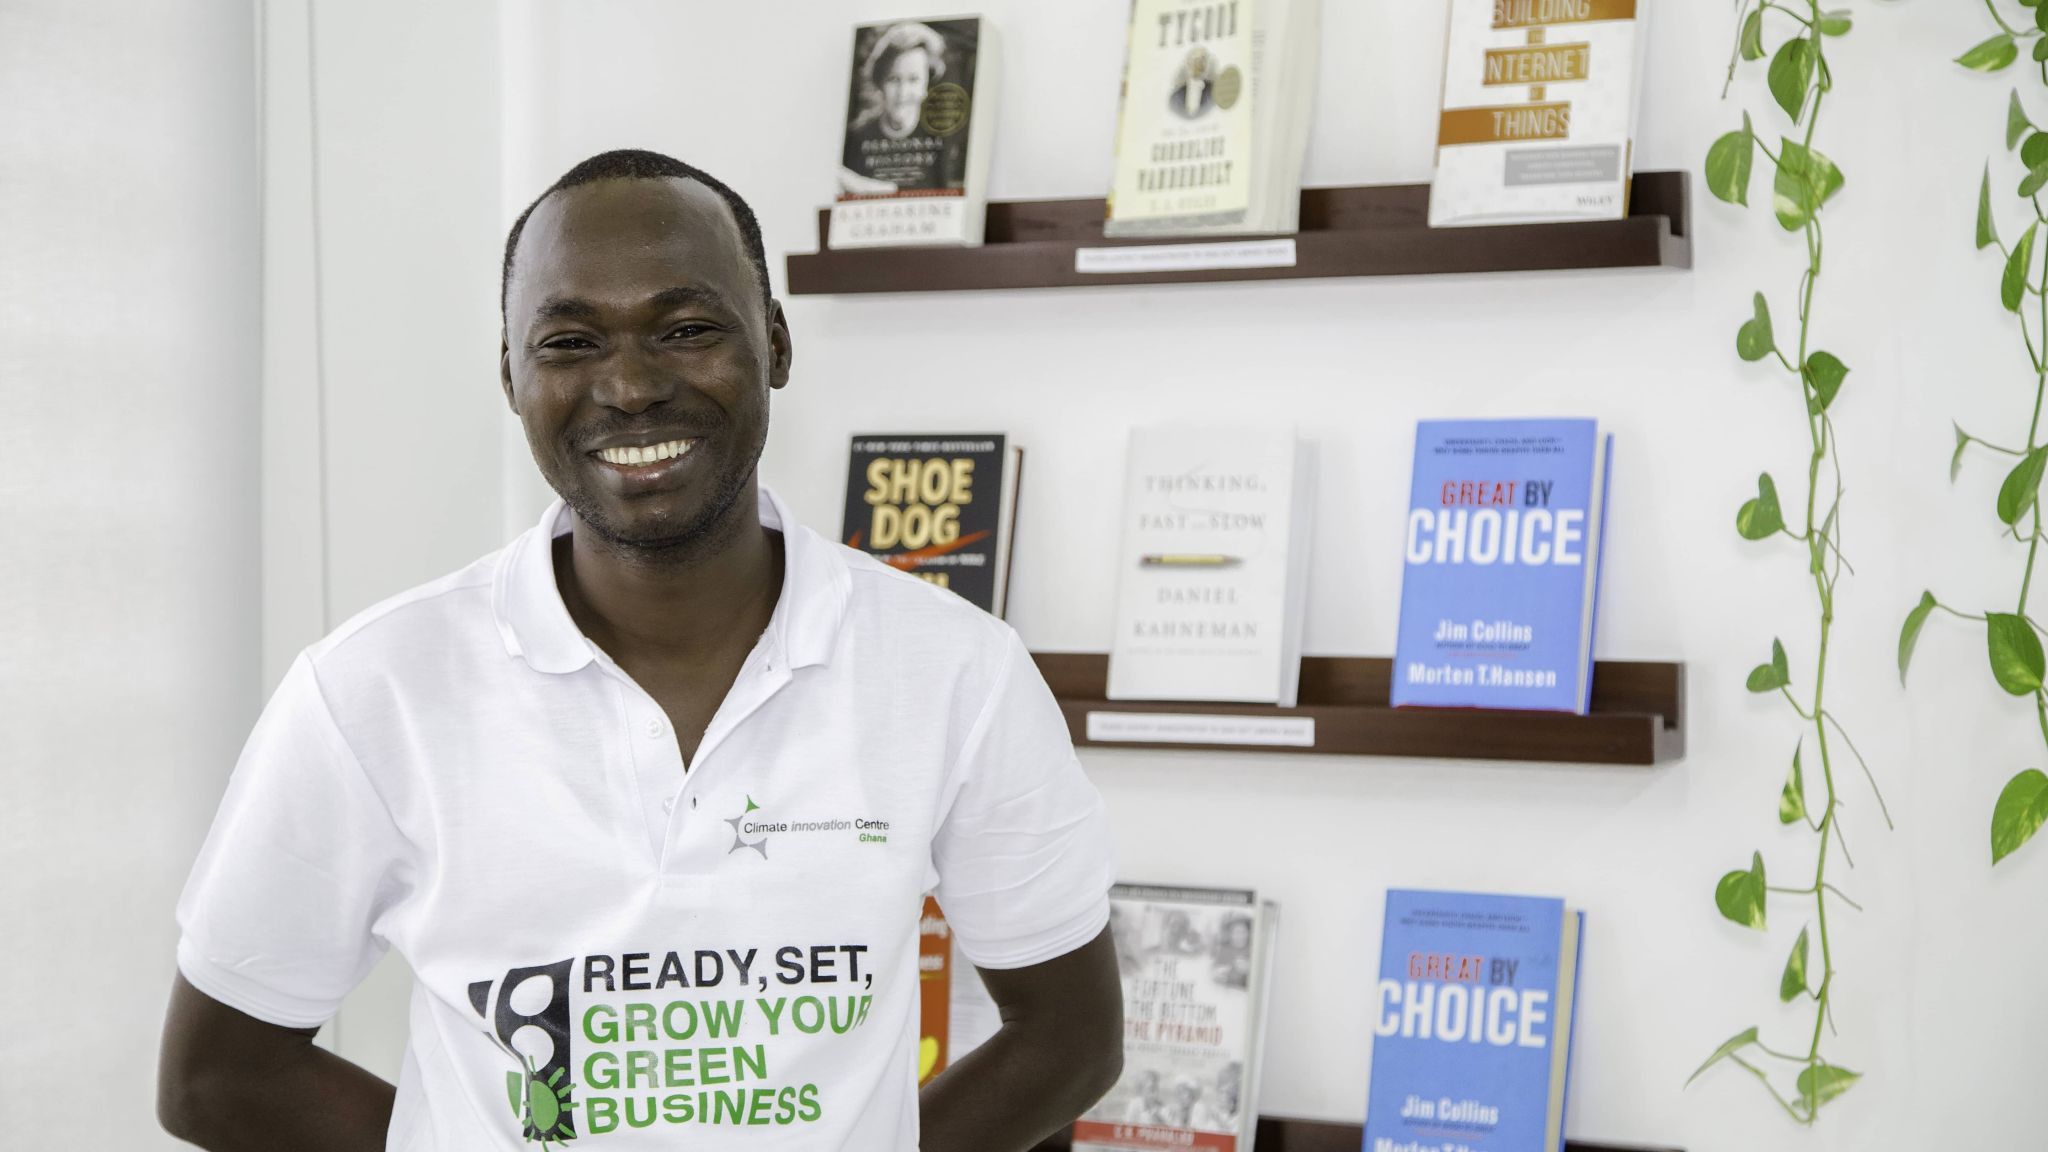 LINCON WINIMI PEEDAH SELECTED AS ONE OF AEA's TOP 50 ENTREPRENEURS IN AFRICA